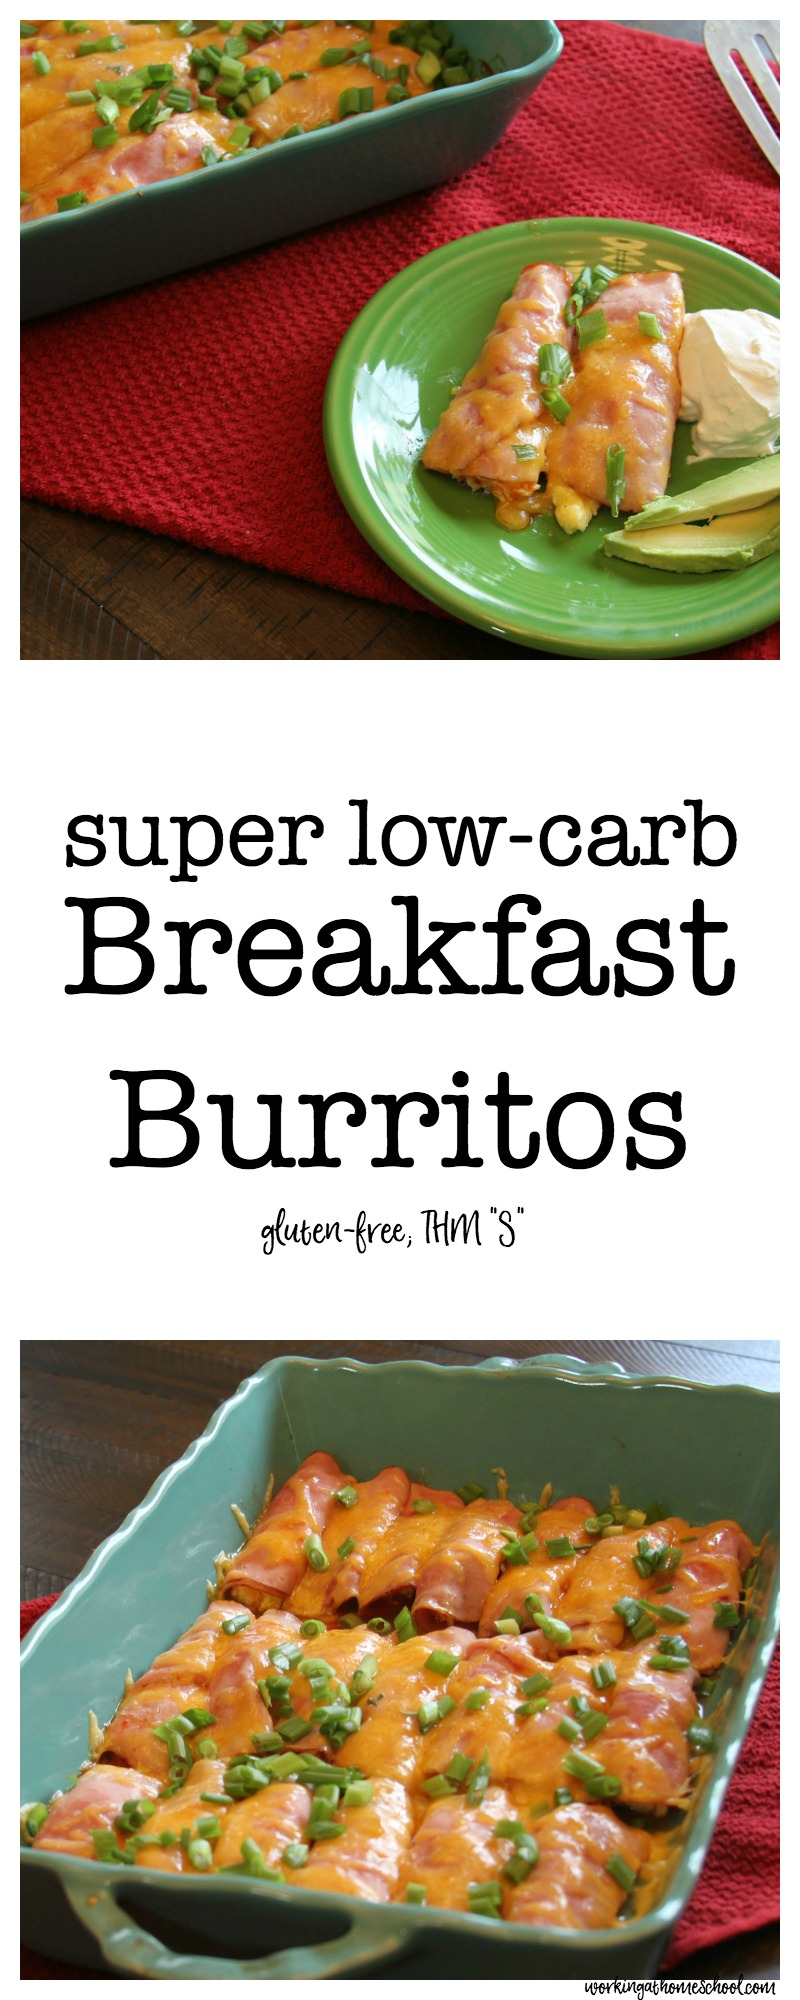 Super Low-Carb Breakfast Burritos